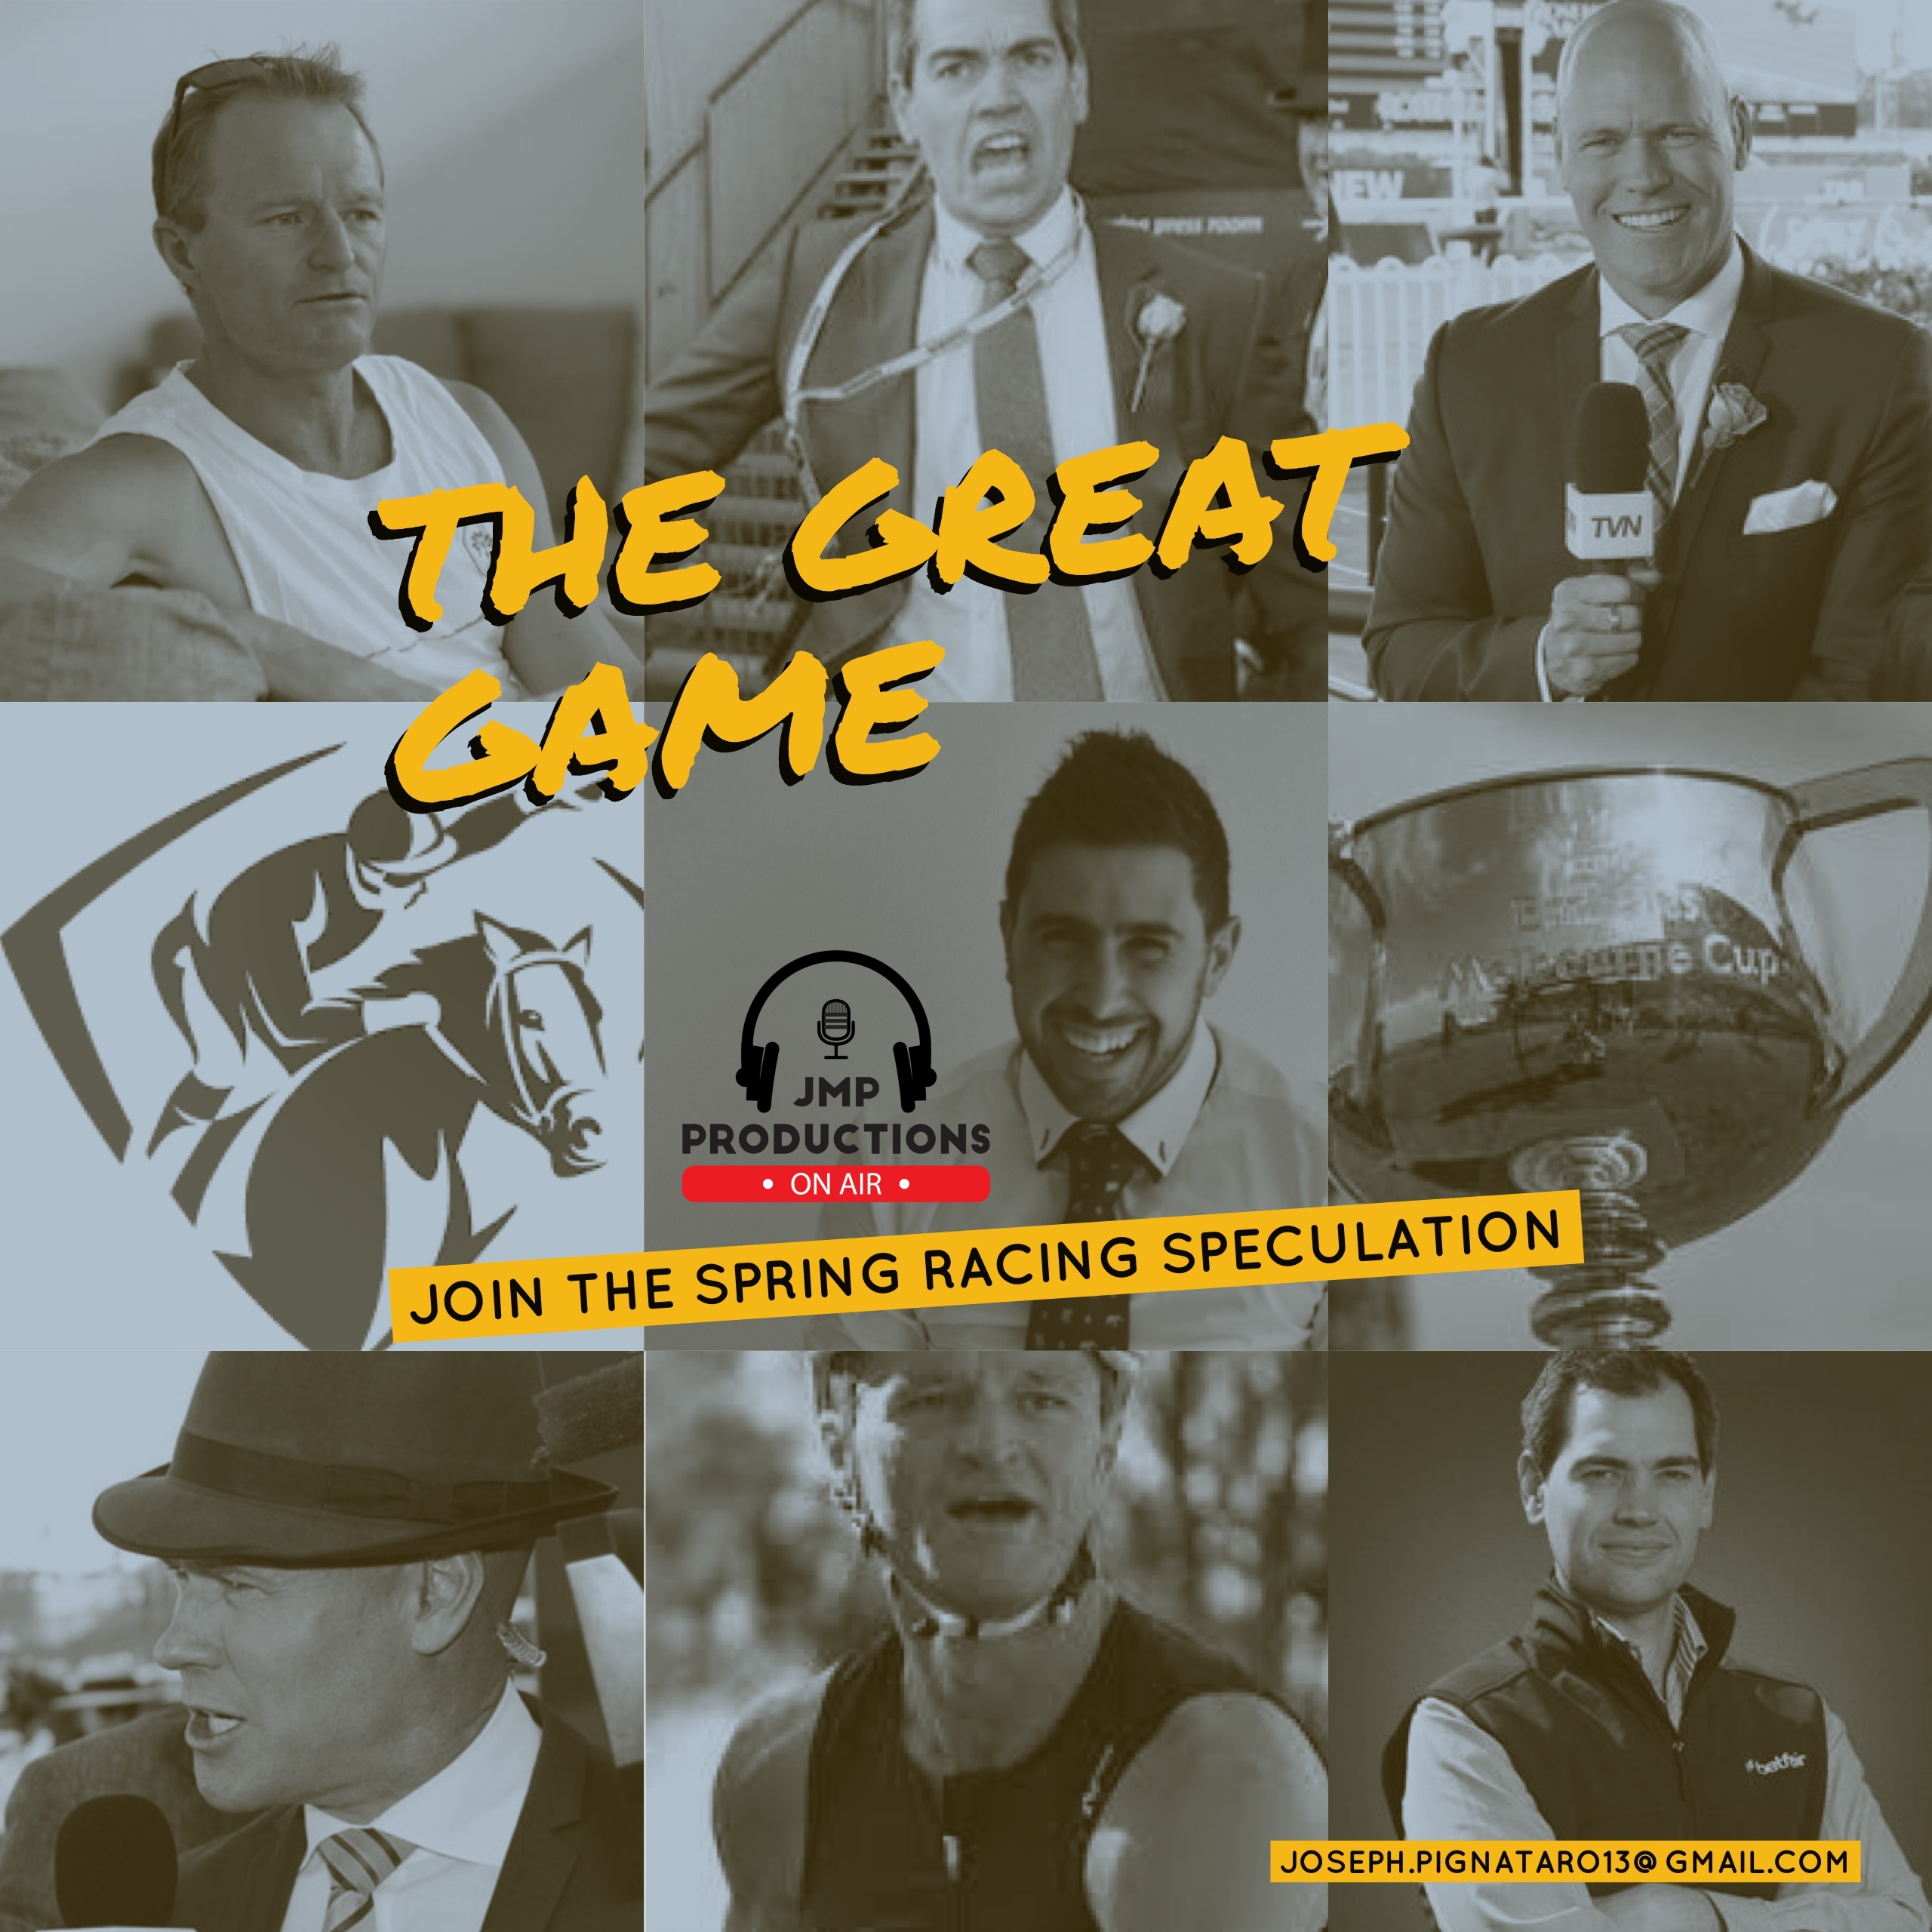 Episode 24 - The Great Game (June 6, 2019)